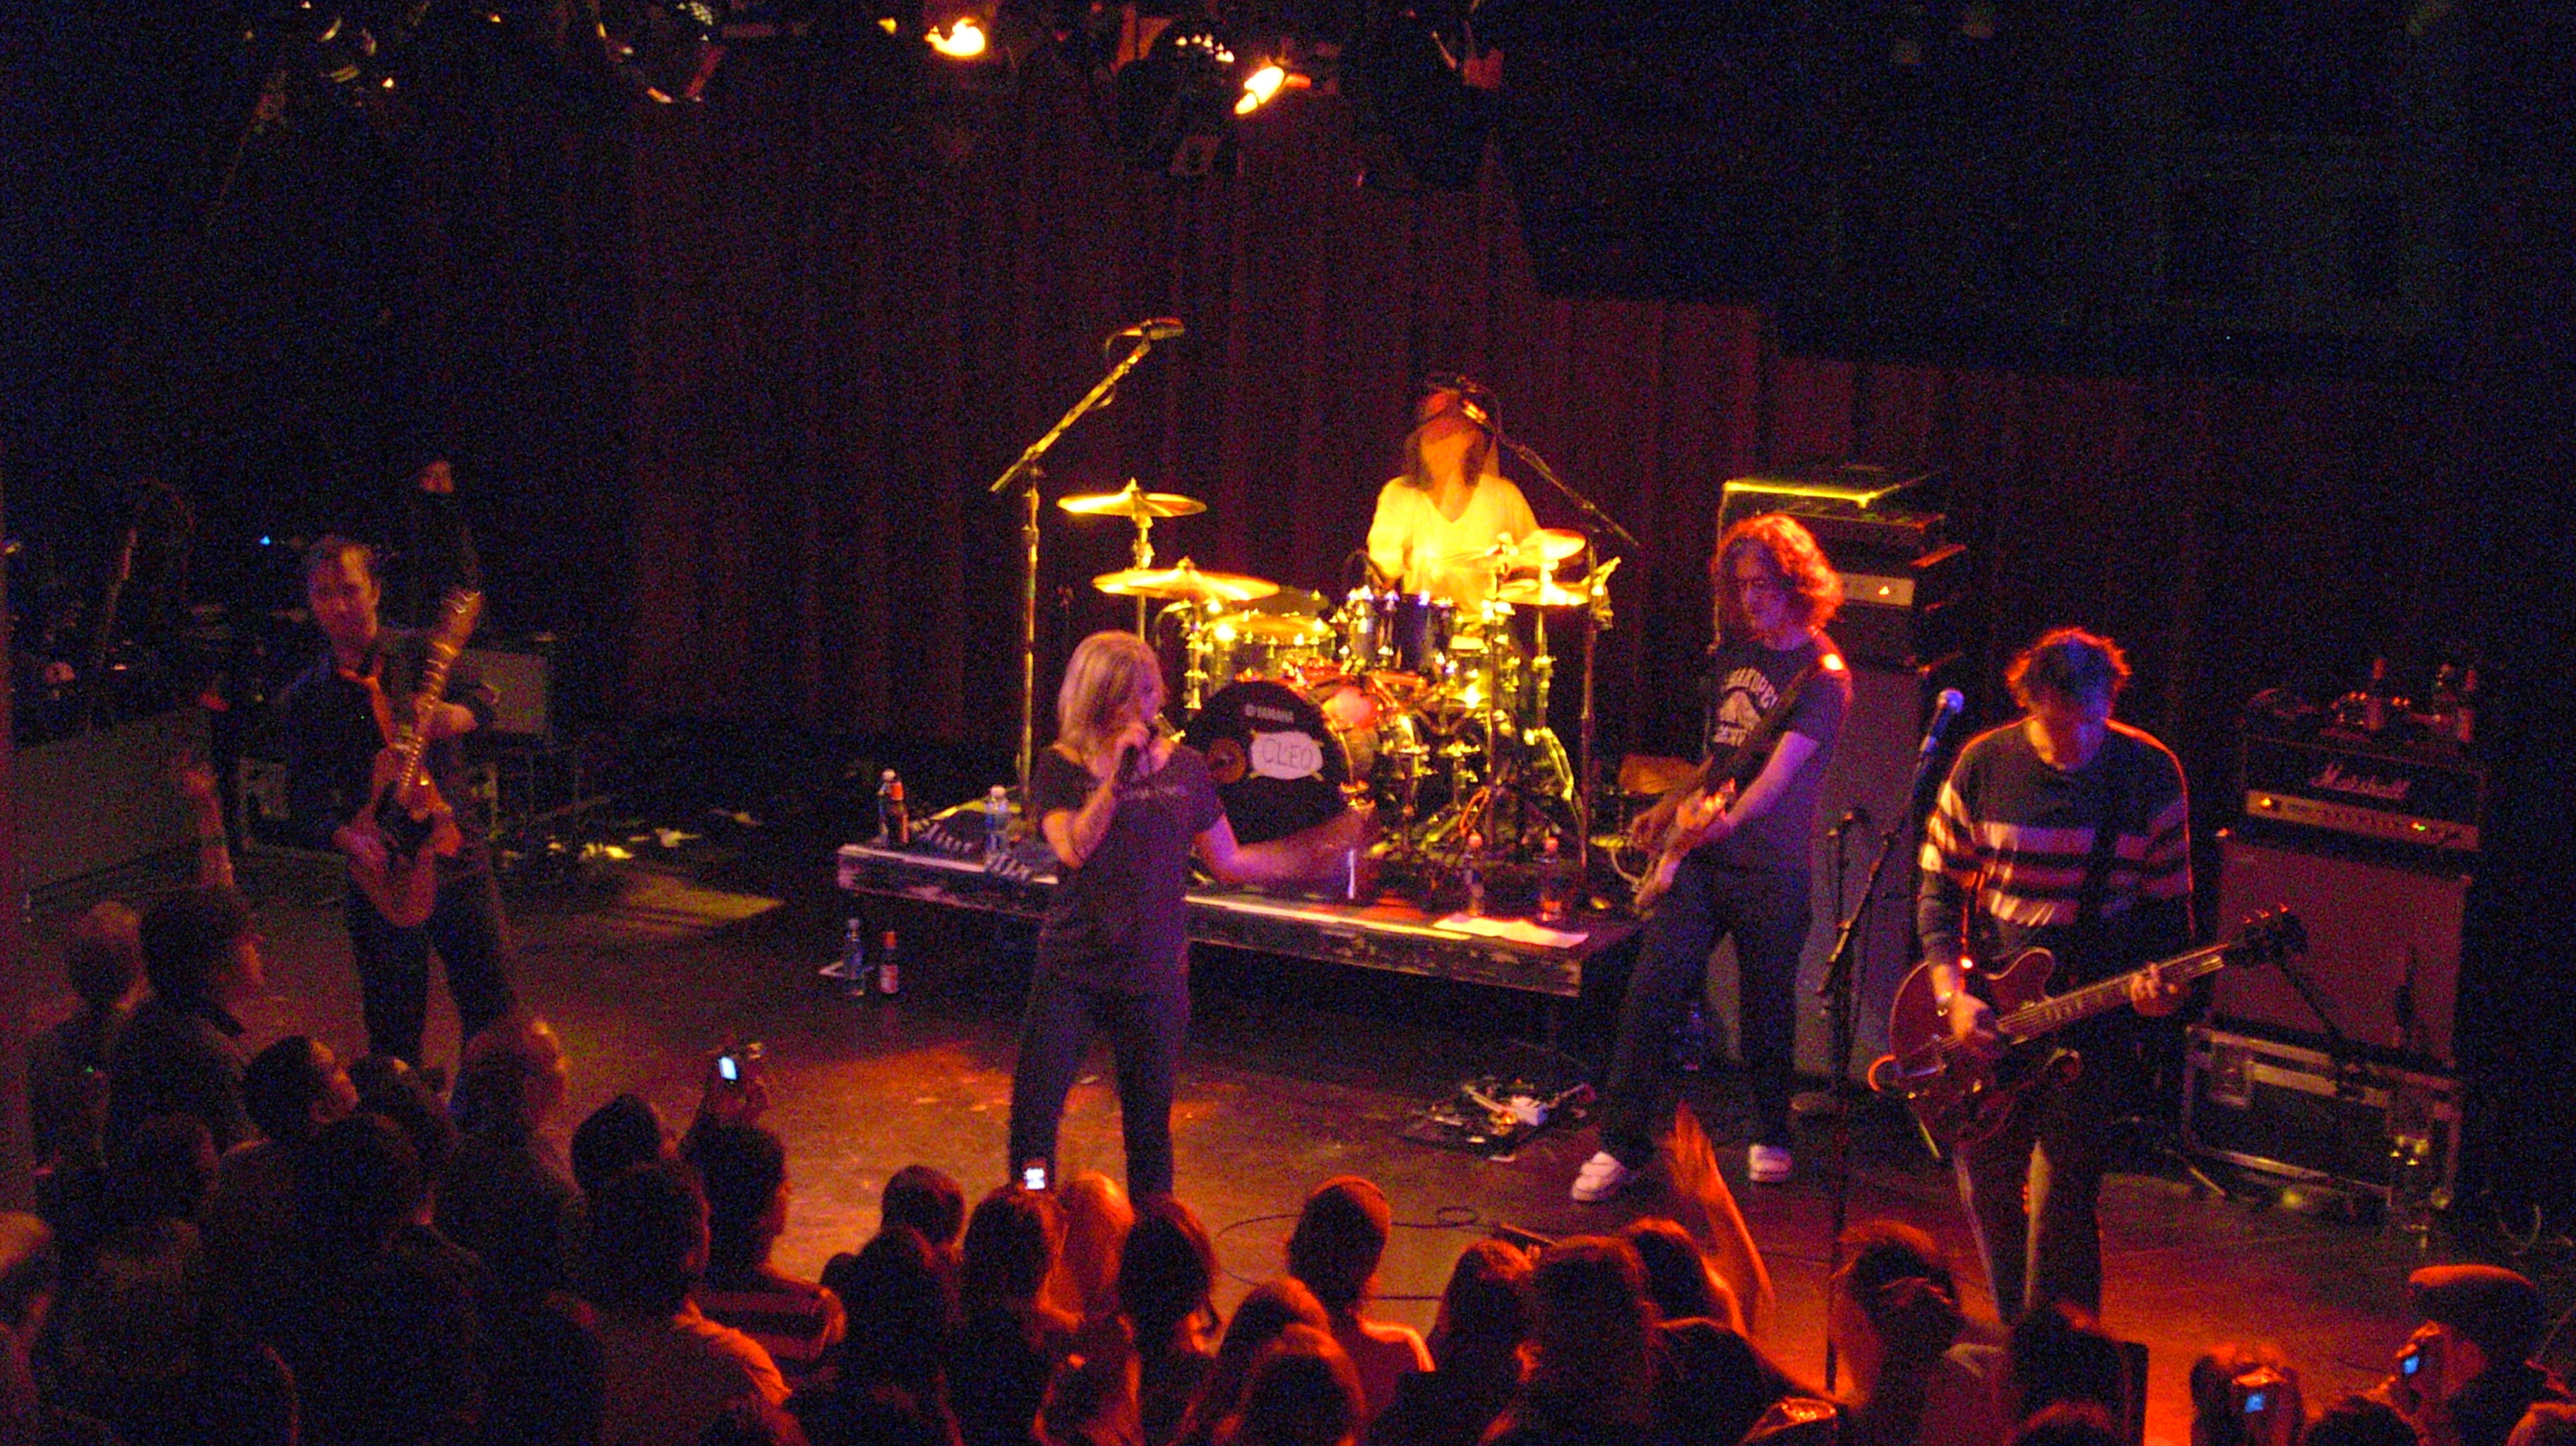 2008-12-09 - Letters to Cleo @ the Paradise - Casio 215